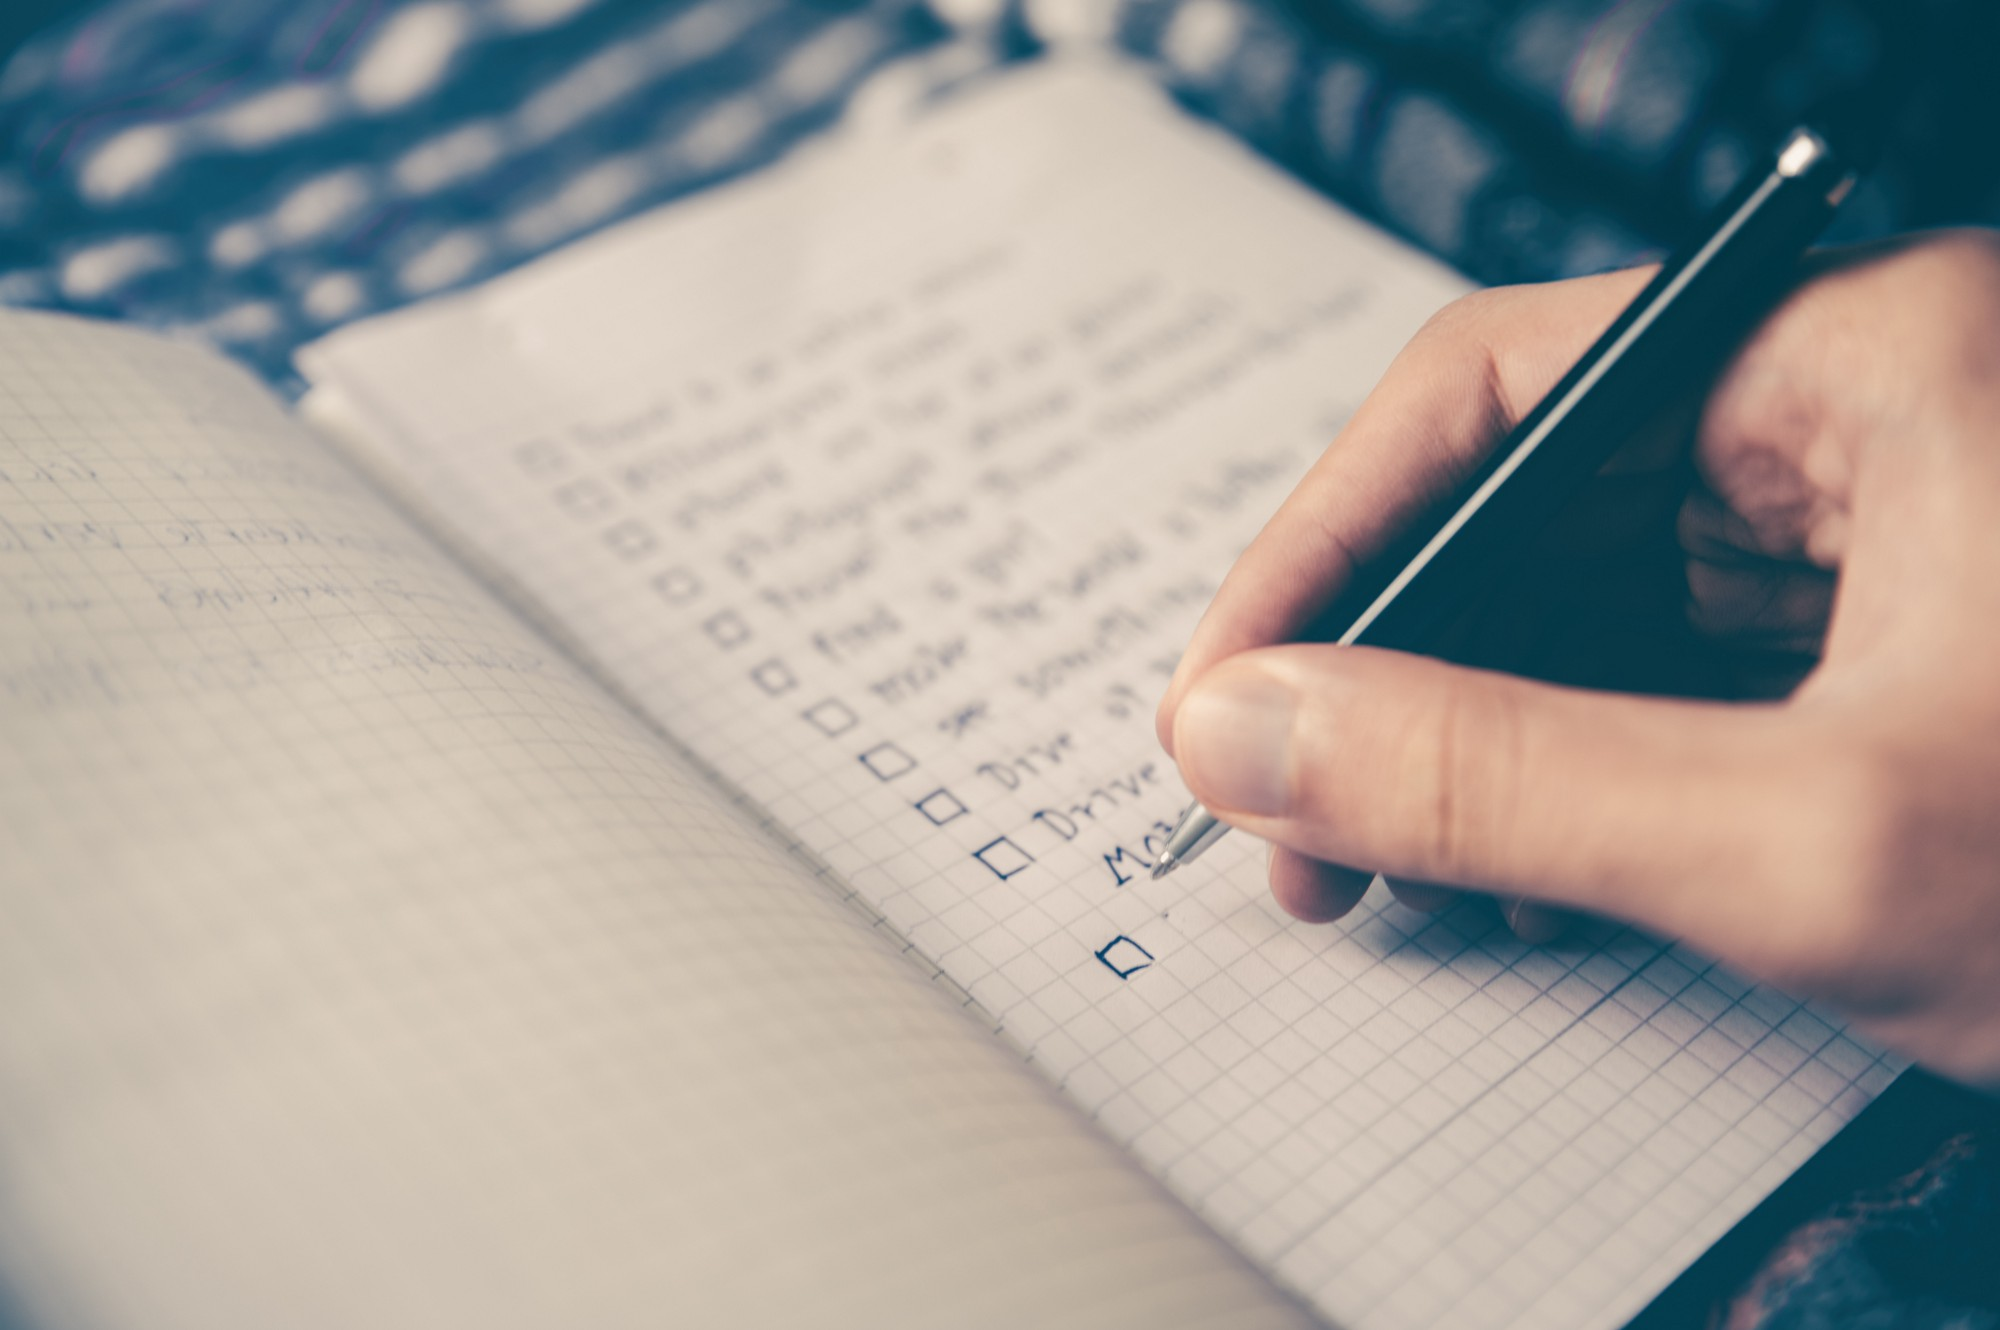 A white hand holds a pen over an open notebook. The page shows a number of items written into a checklist.